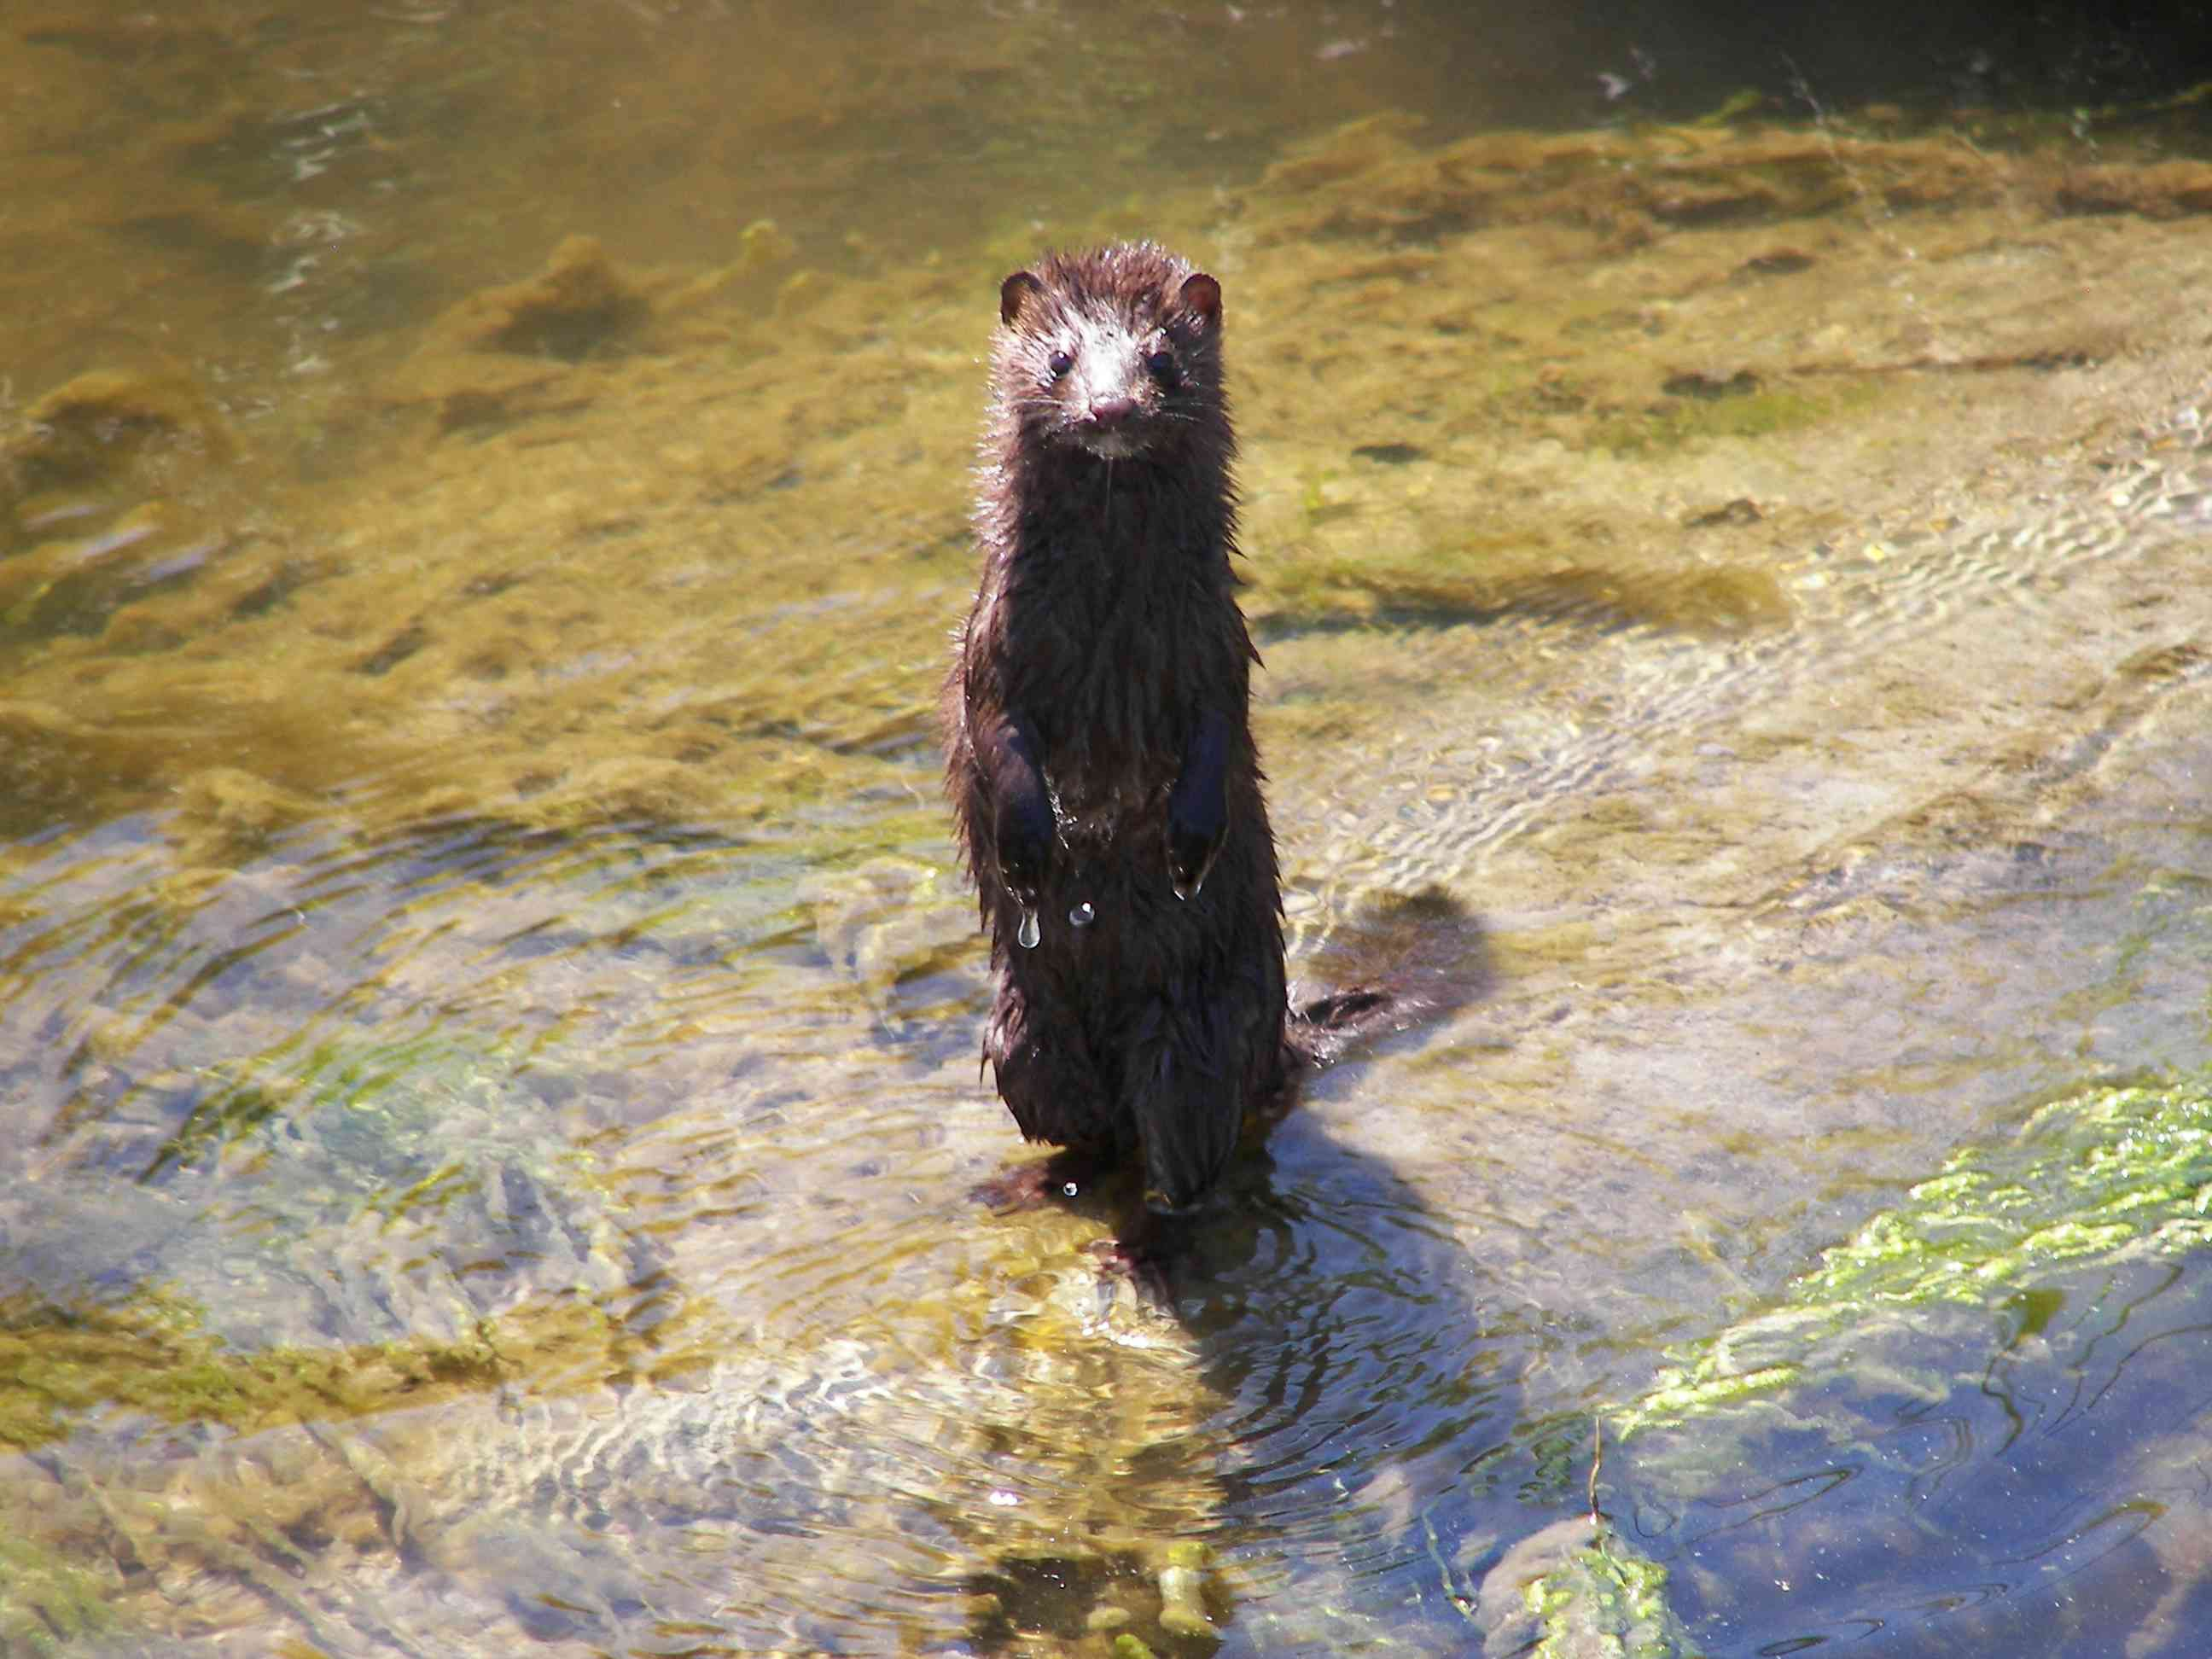 A mink stands up in a creek in the Rachel Carson Wildlife Refuge located in Maine.